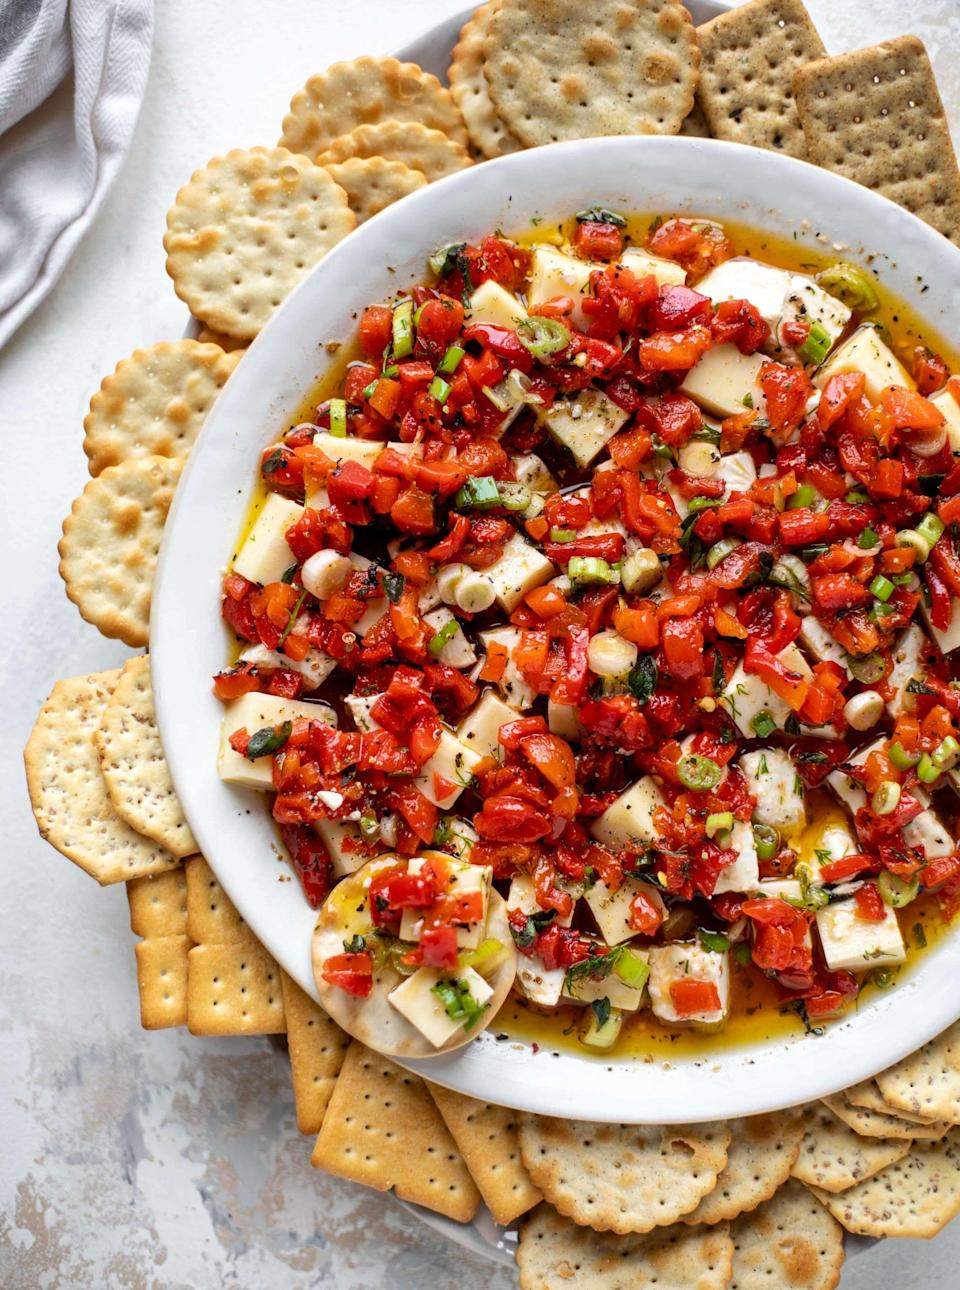 """<p>This marinated cheese recipe is a game day favorite, and for good reason! Load up on the crackers, and dive into this dip anytime you're in the mood for some seriously good cheese.</p> <p><strong>Get the recipe:</strong> <a href=""""https://www.howsweeteats.com/2019/12/marinated-cheese/"""" class=""""link rapid-noclick-resp"""" rel=""""nofollow noopener"""" target=""""_blank"""" data-ylk=""""slk:marinated cheese"""">marinated cheese</a></p>"""